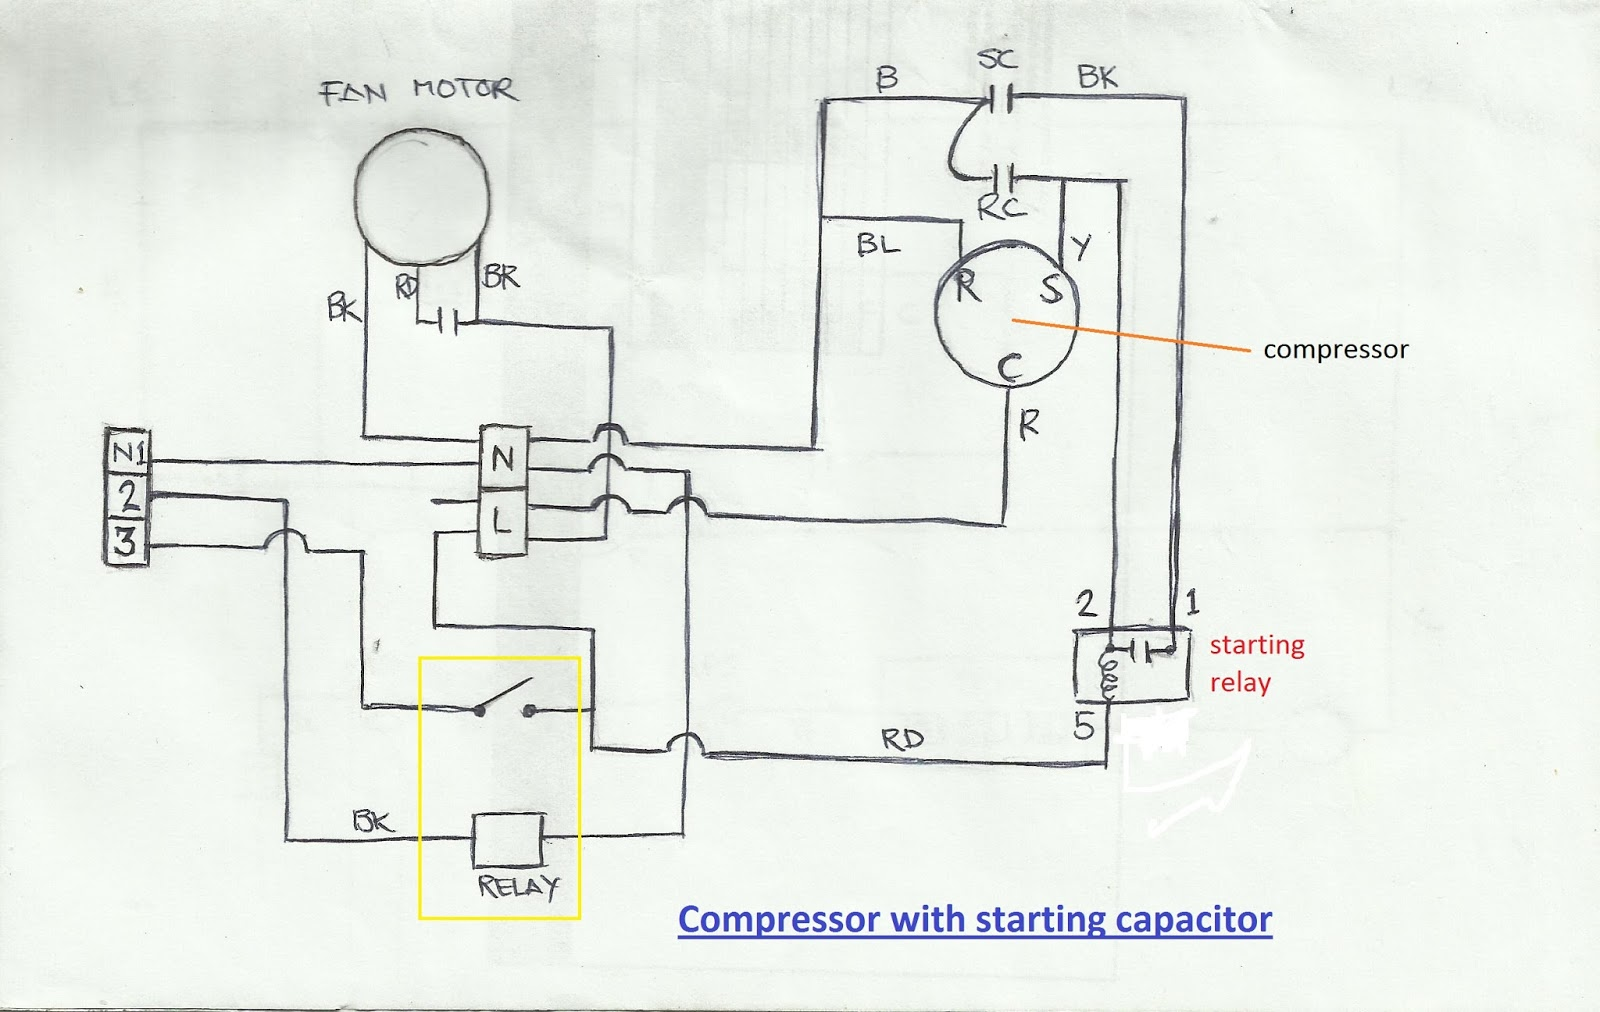 Refrigeration and air conditioning repair wiring diagram of wiring diagram of compressor with starting capacitor sciox Images